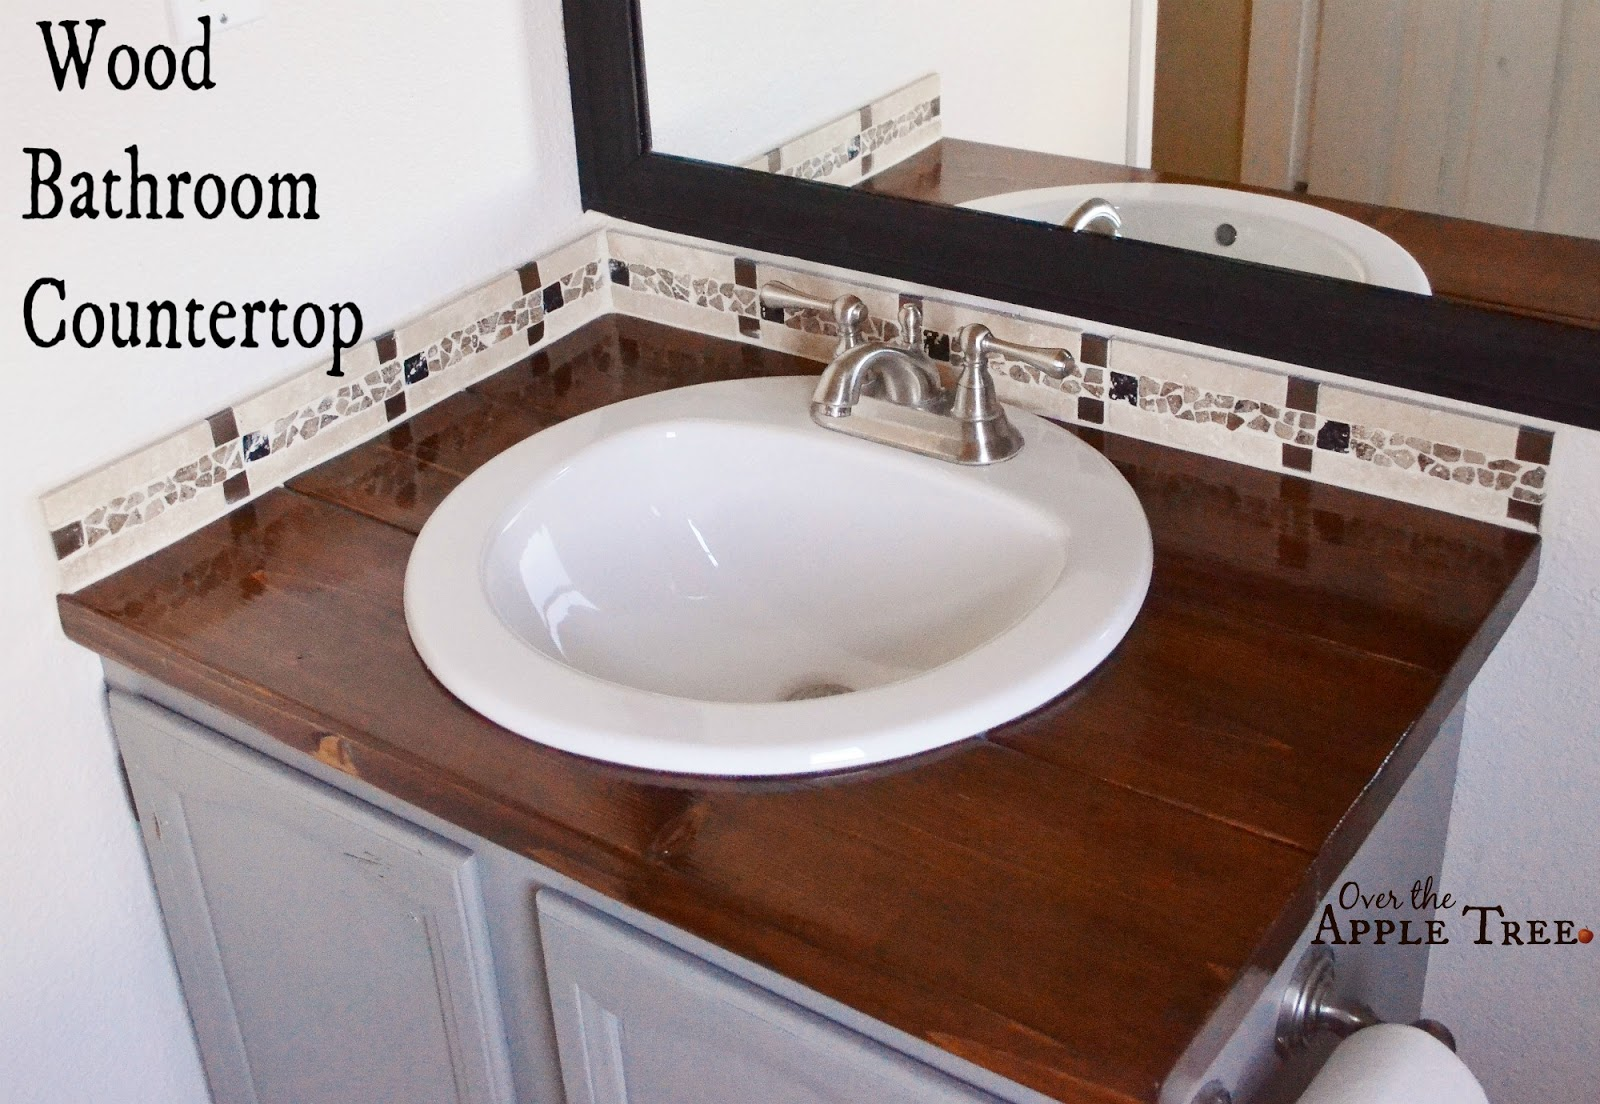 DIY Wood Bathroom Countertop, Over The Apple Tree